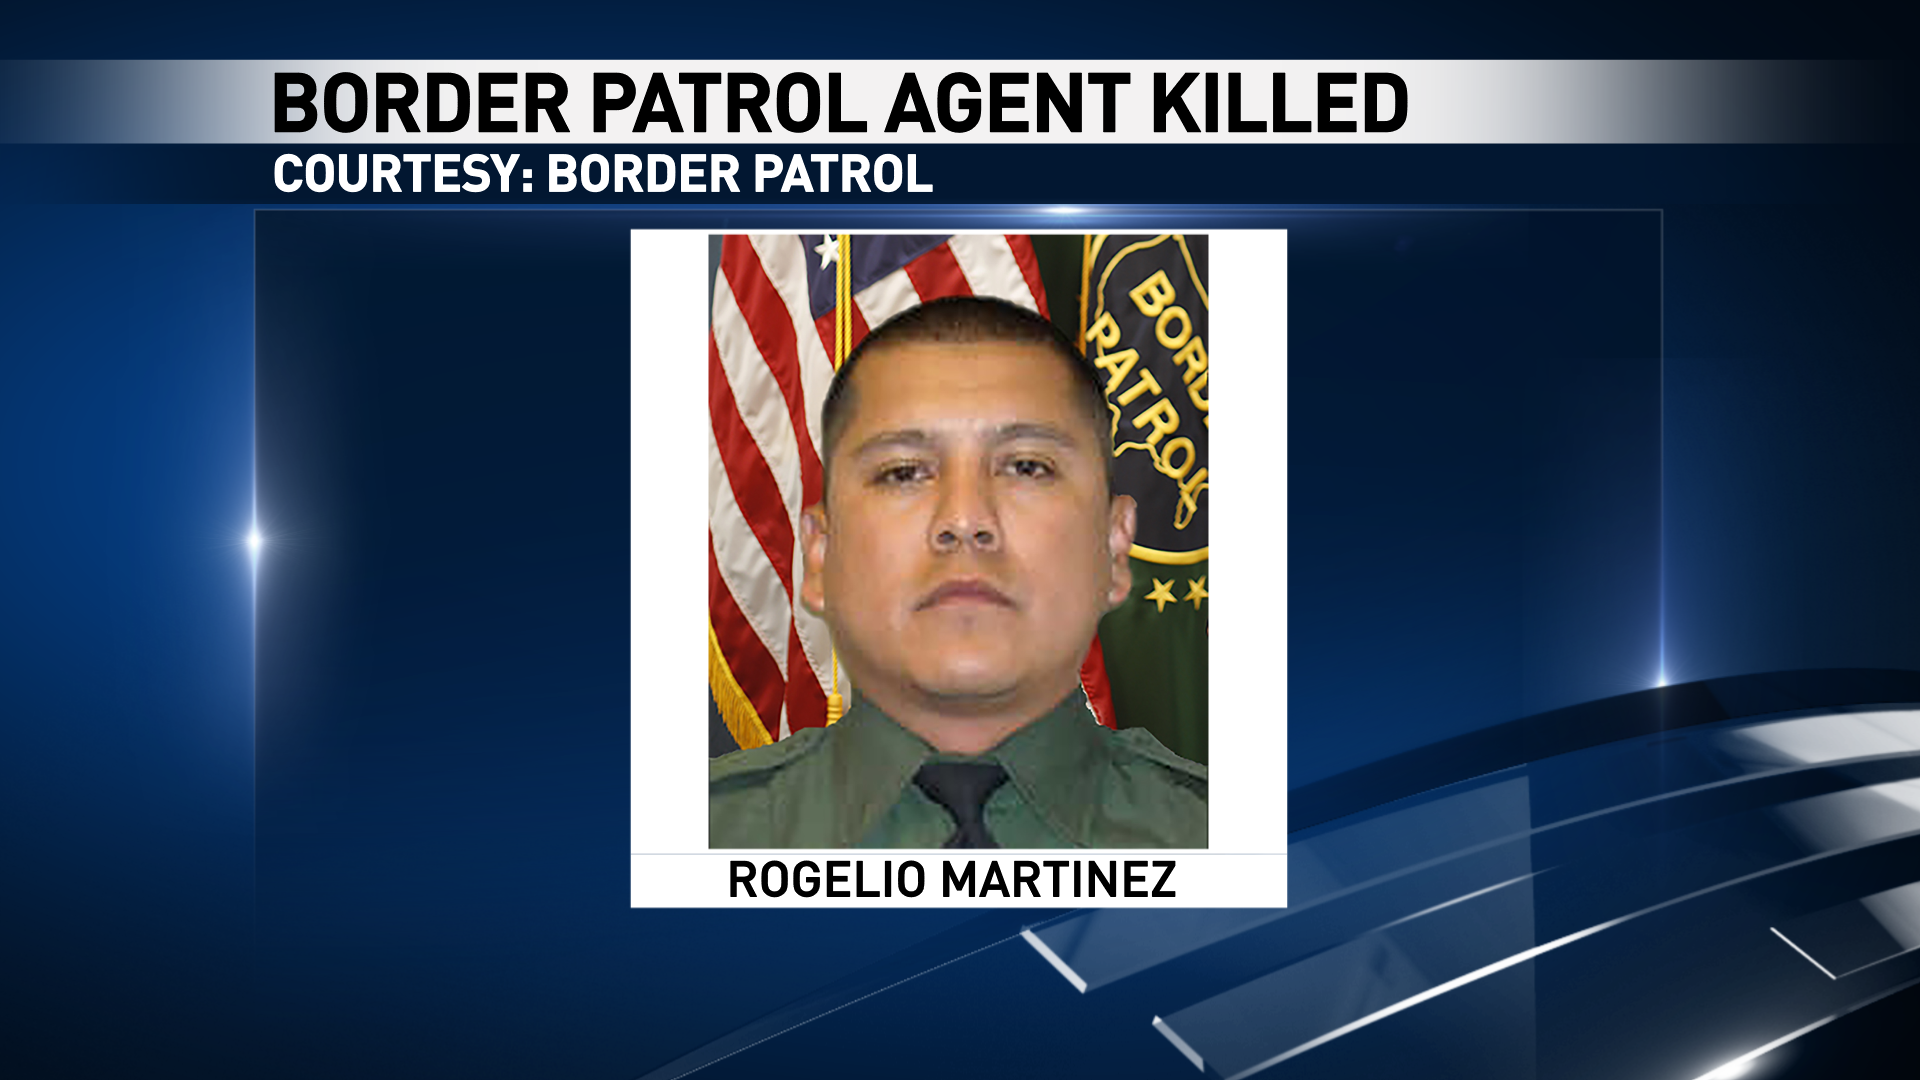 Rogelio Martinez of El Paso was killed in an incident while on duty near Van Horn, Texas Sunday, Nov. 19, 2017.{&amp;nbsp;}(Courtesy Border Patrol)<p></p>